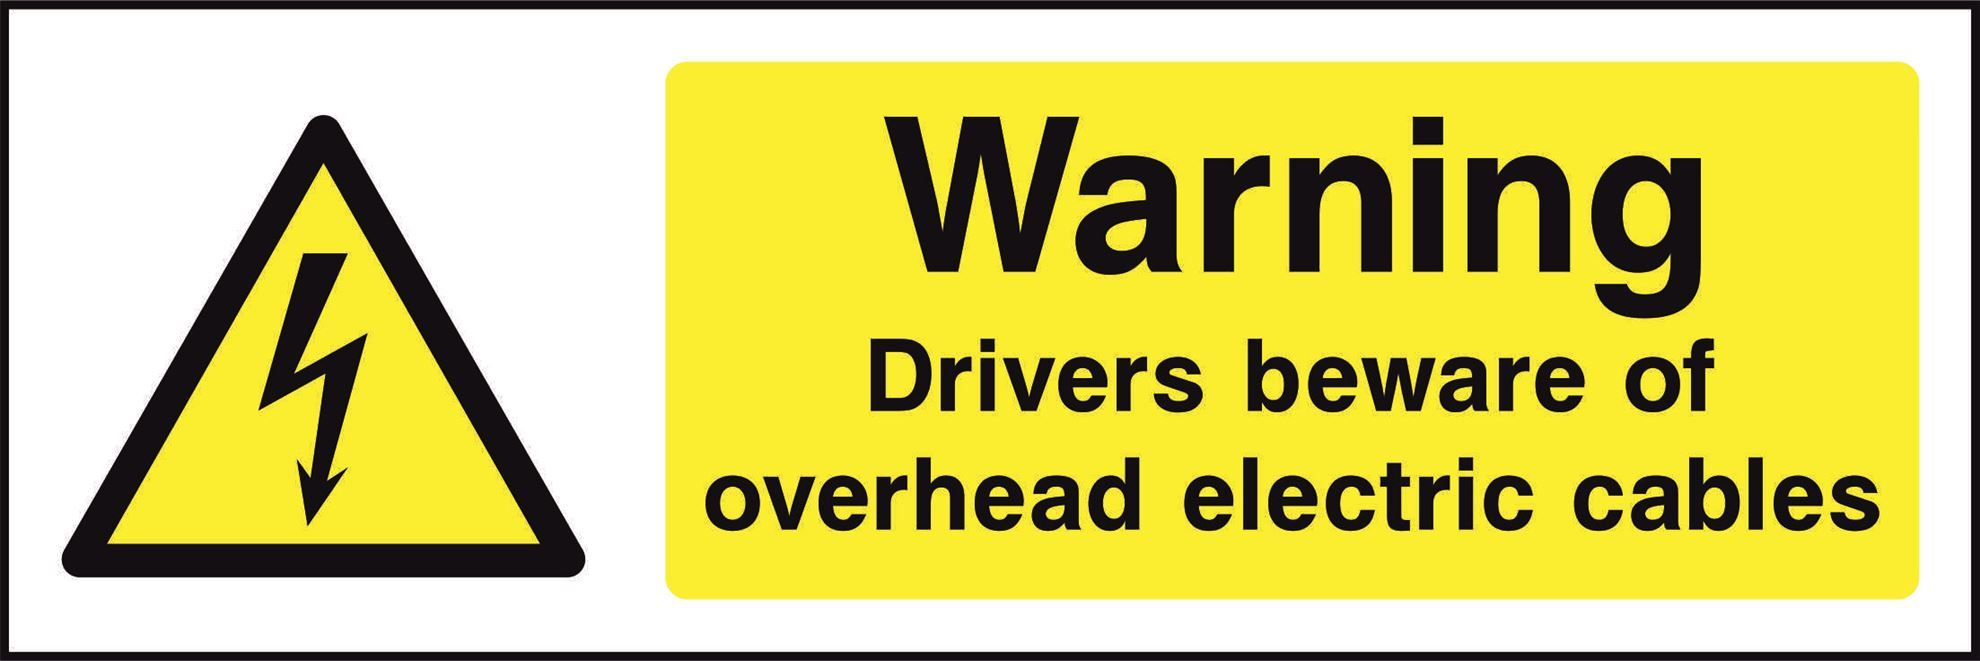 Warning Drivers beware of overhead electric cables